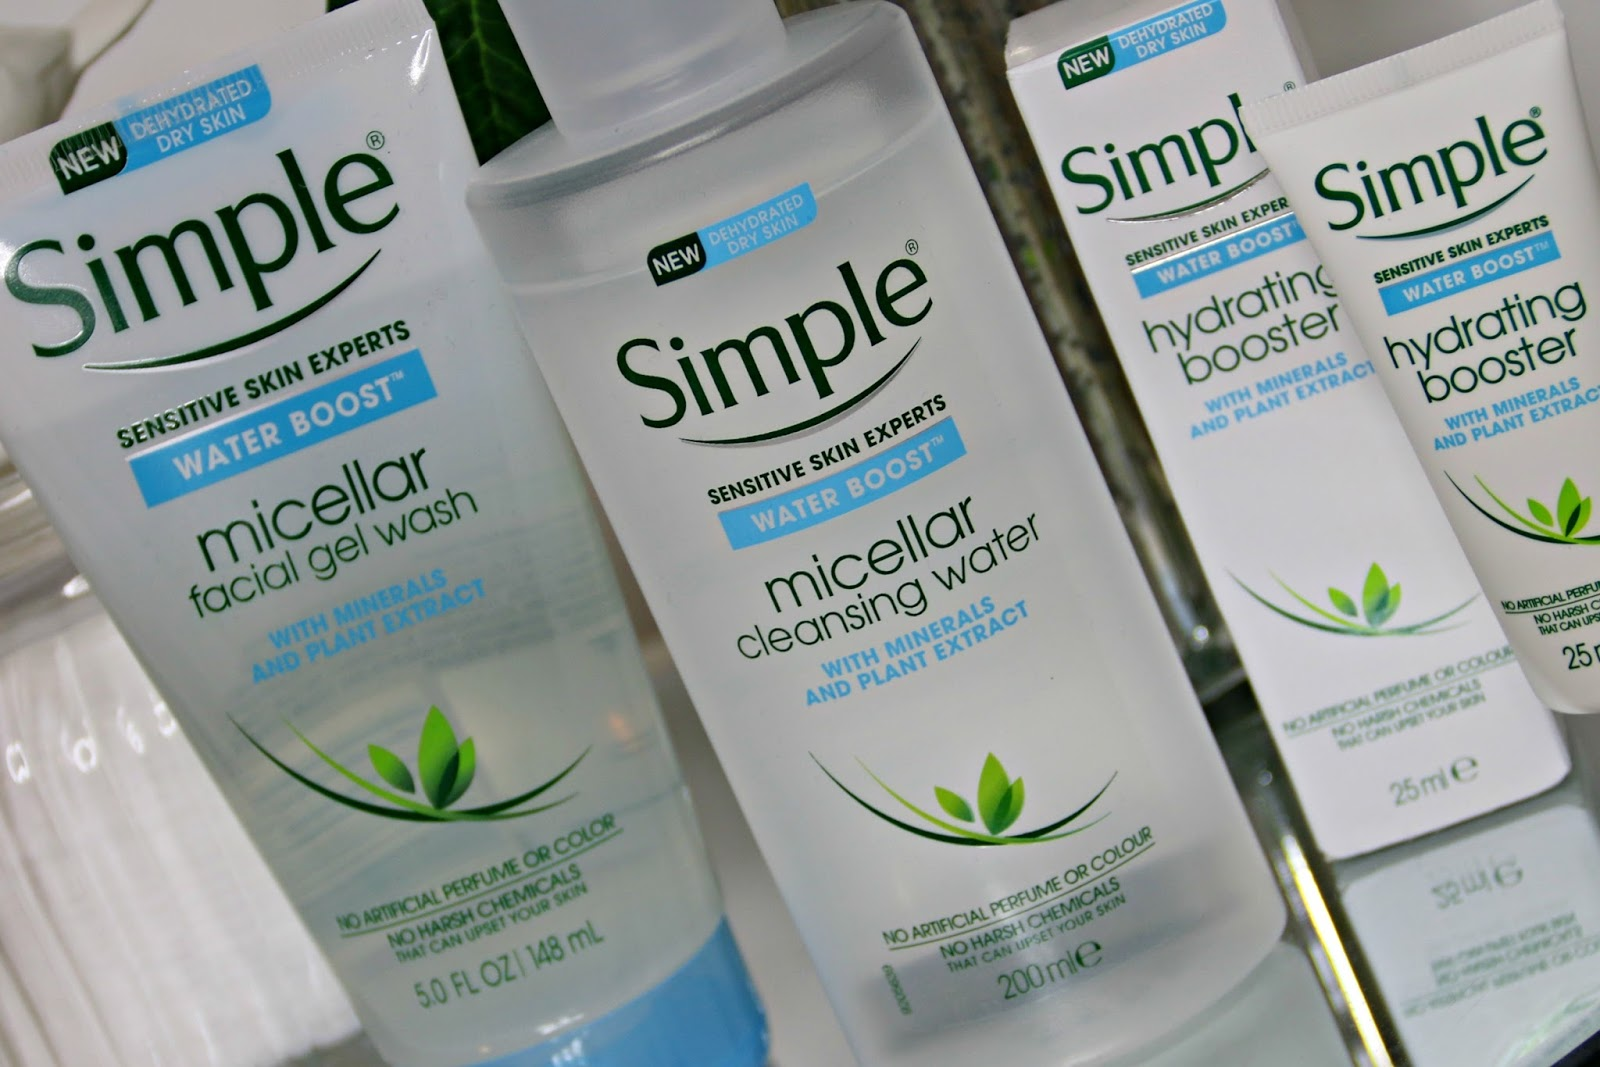 Simple Water Boost Range Review: Micellar Facial Gel Wash, Micellar Water and Hydrating Booster